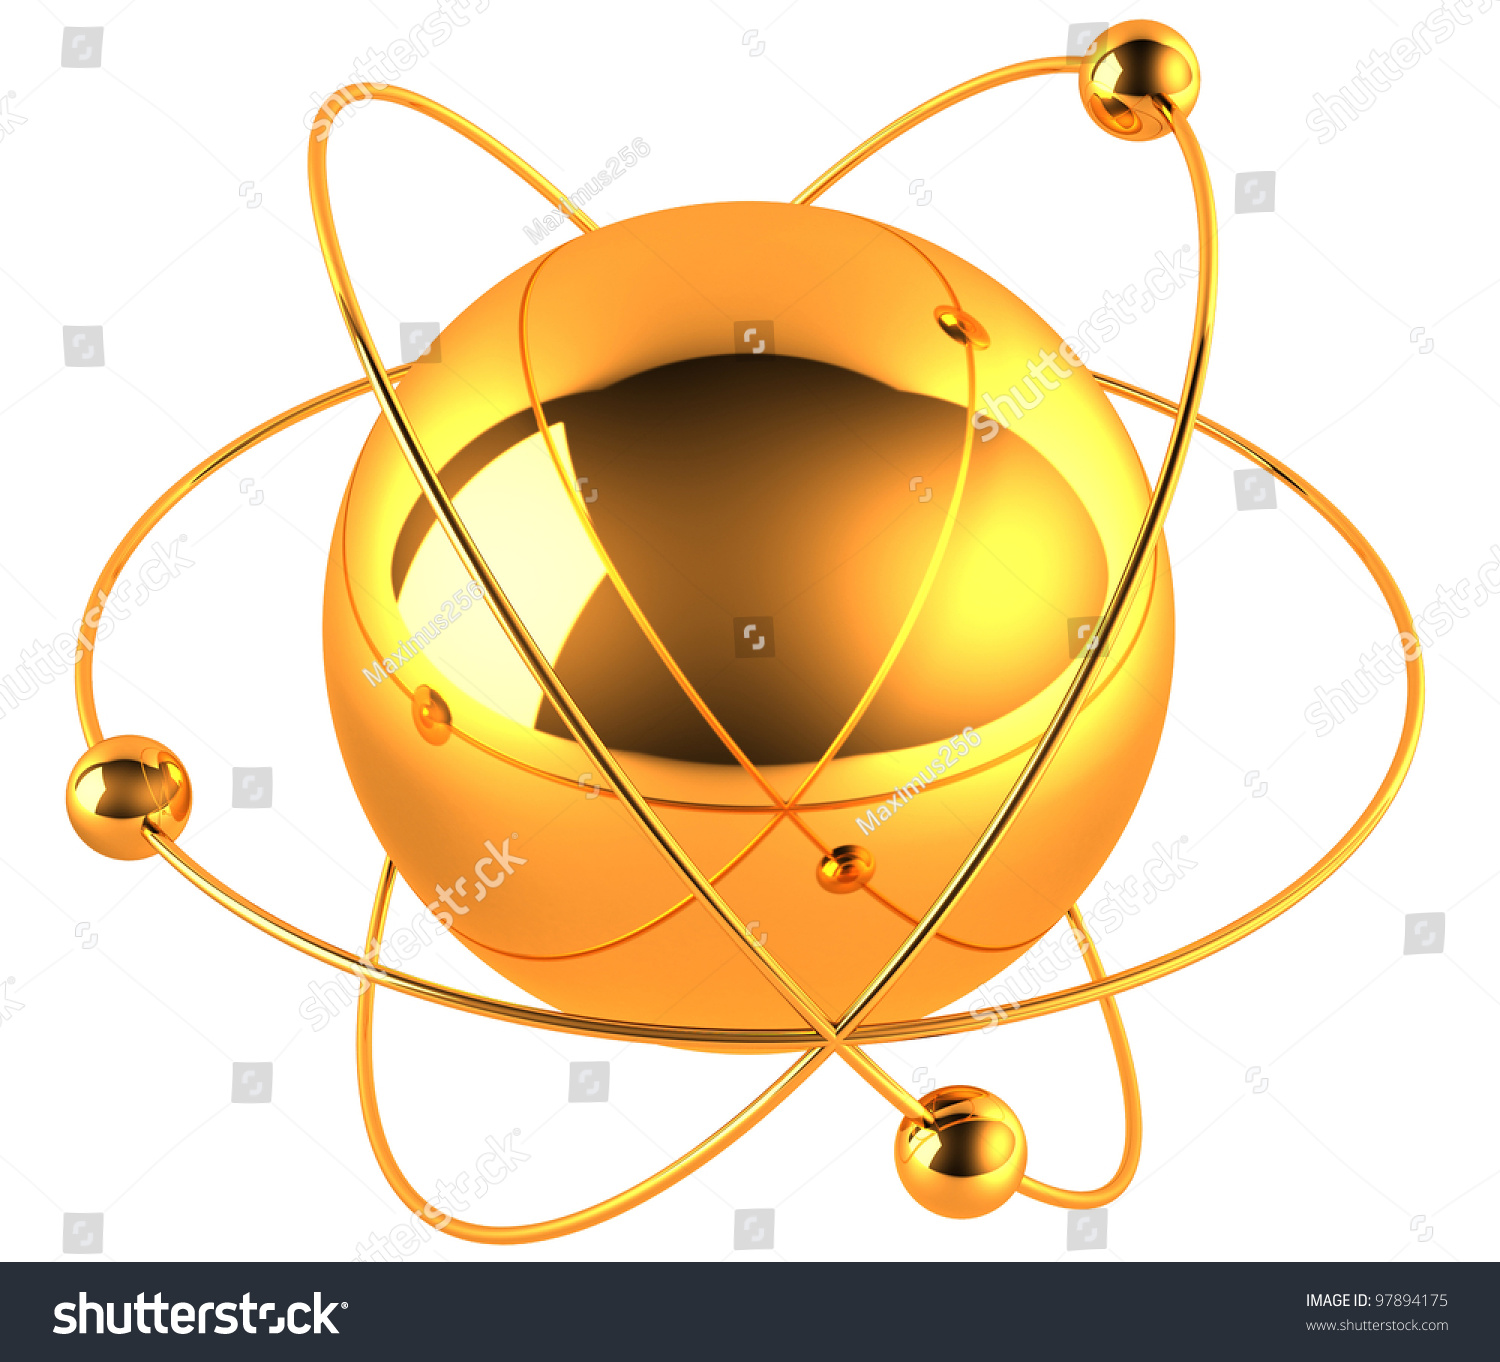 nucleus diagram of gold nucleaus diagram of gold's gold atom stock illustration 97894175 shutterstock